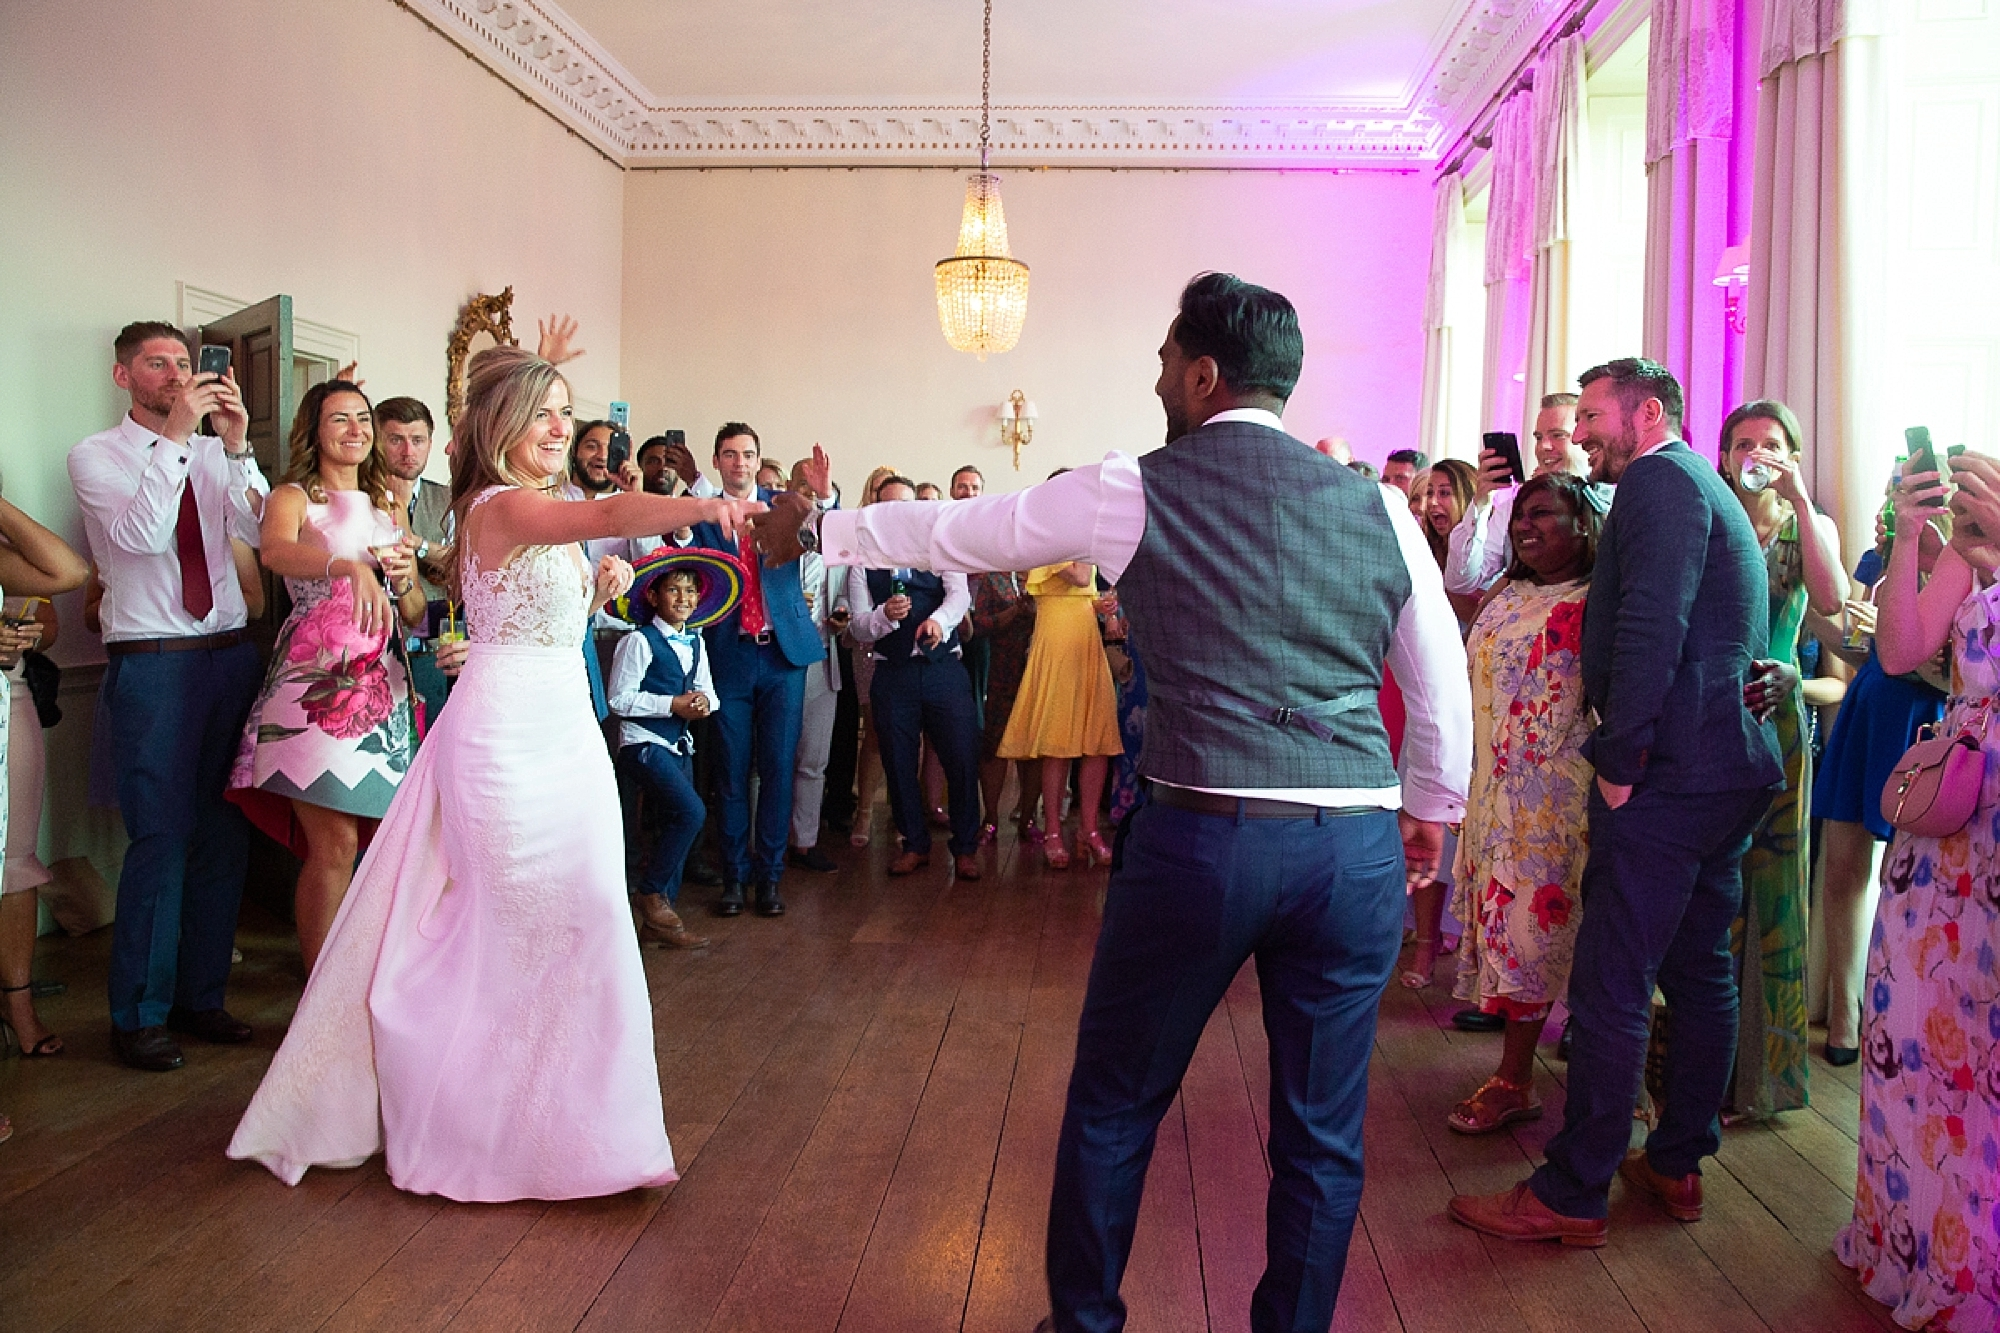 bride and groom dance in the main ballroom of Pynes house at Devon wedding